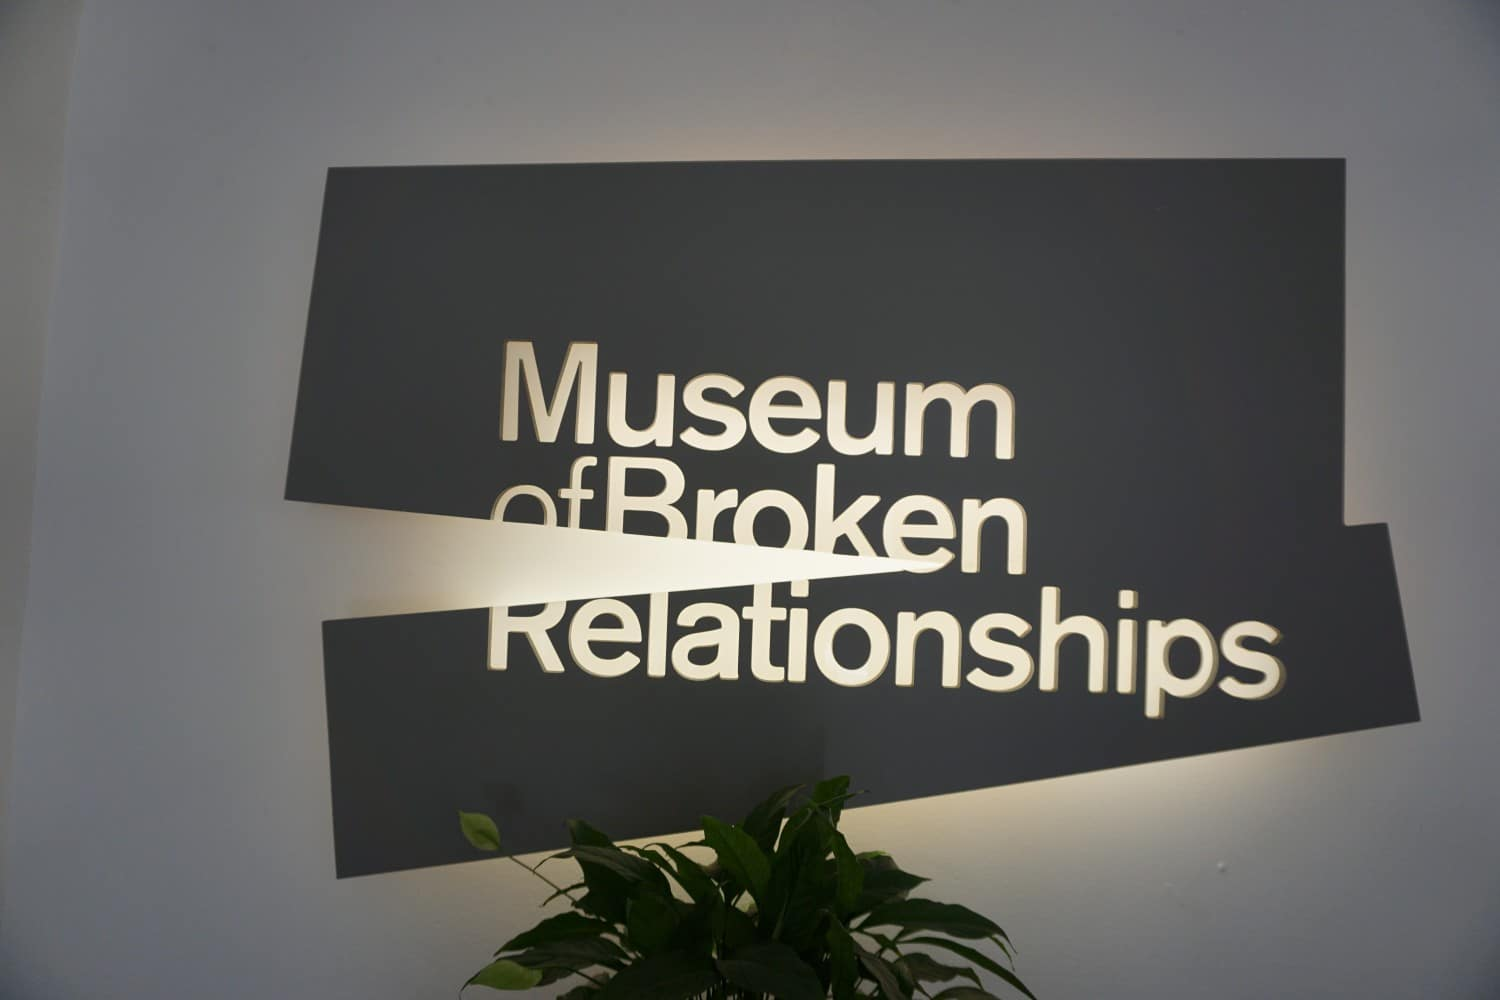 The Museum of Broken Relationships is a must see if you are visiting Zagreb. Read our full travel guide.